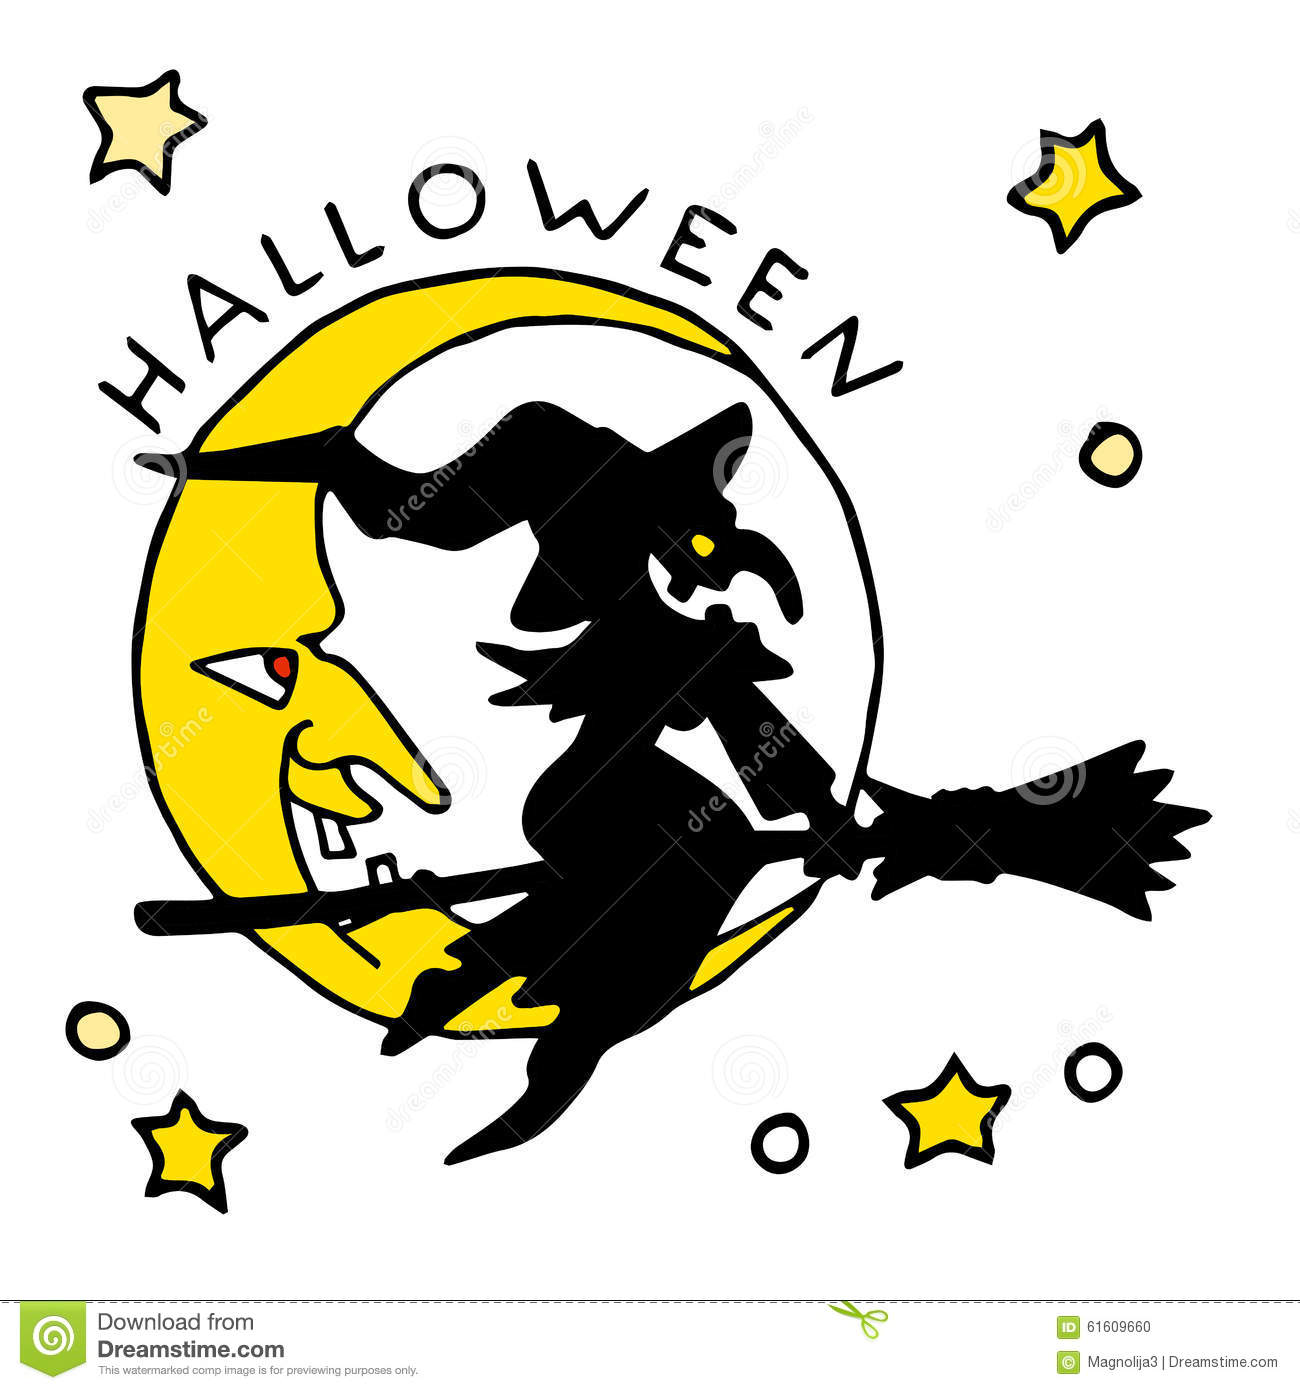 Happy Halloween Cartoon Icon With Witch Stock Vector - Image: 61609660